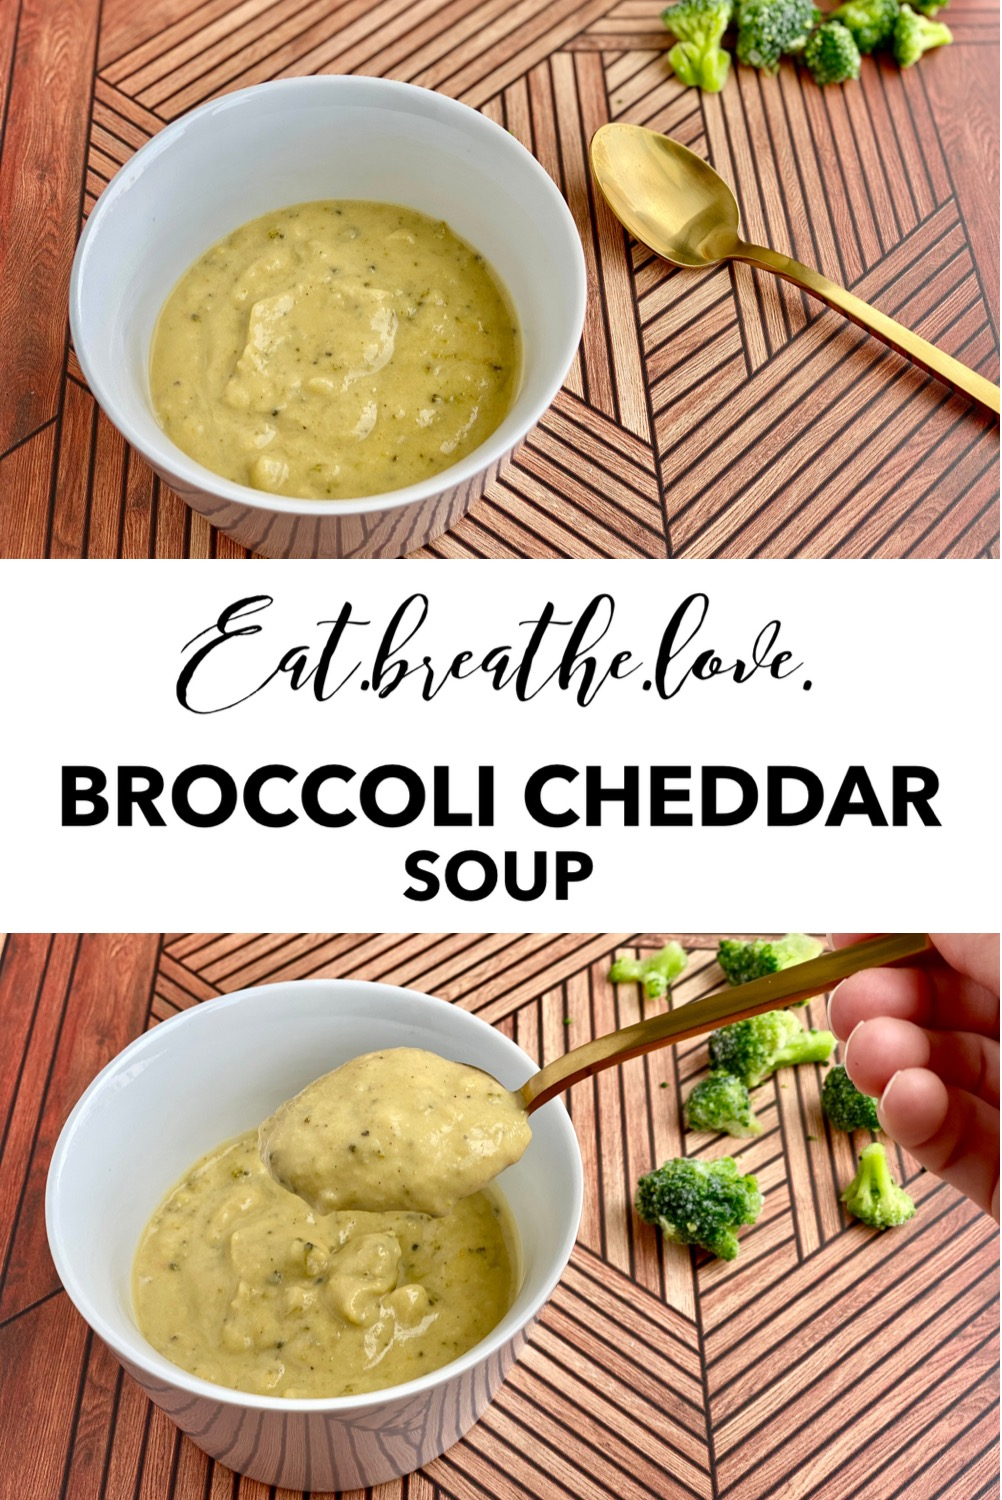 Image with a picture of broccoli cheddar soup